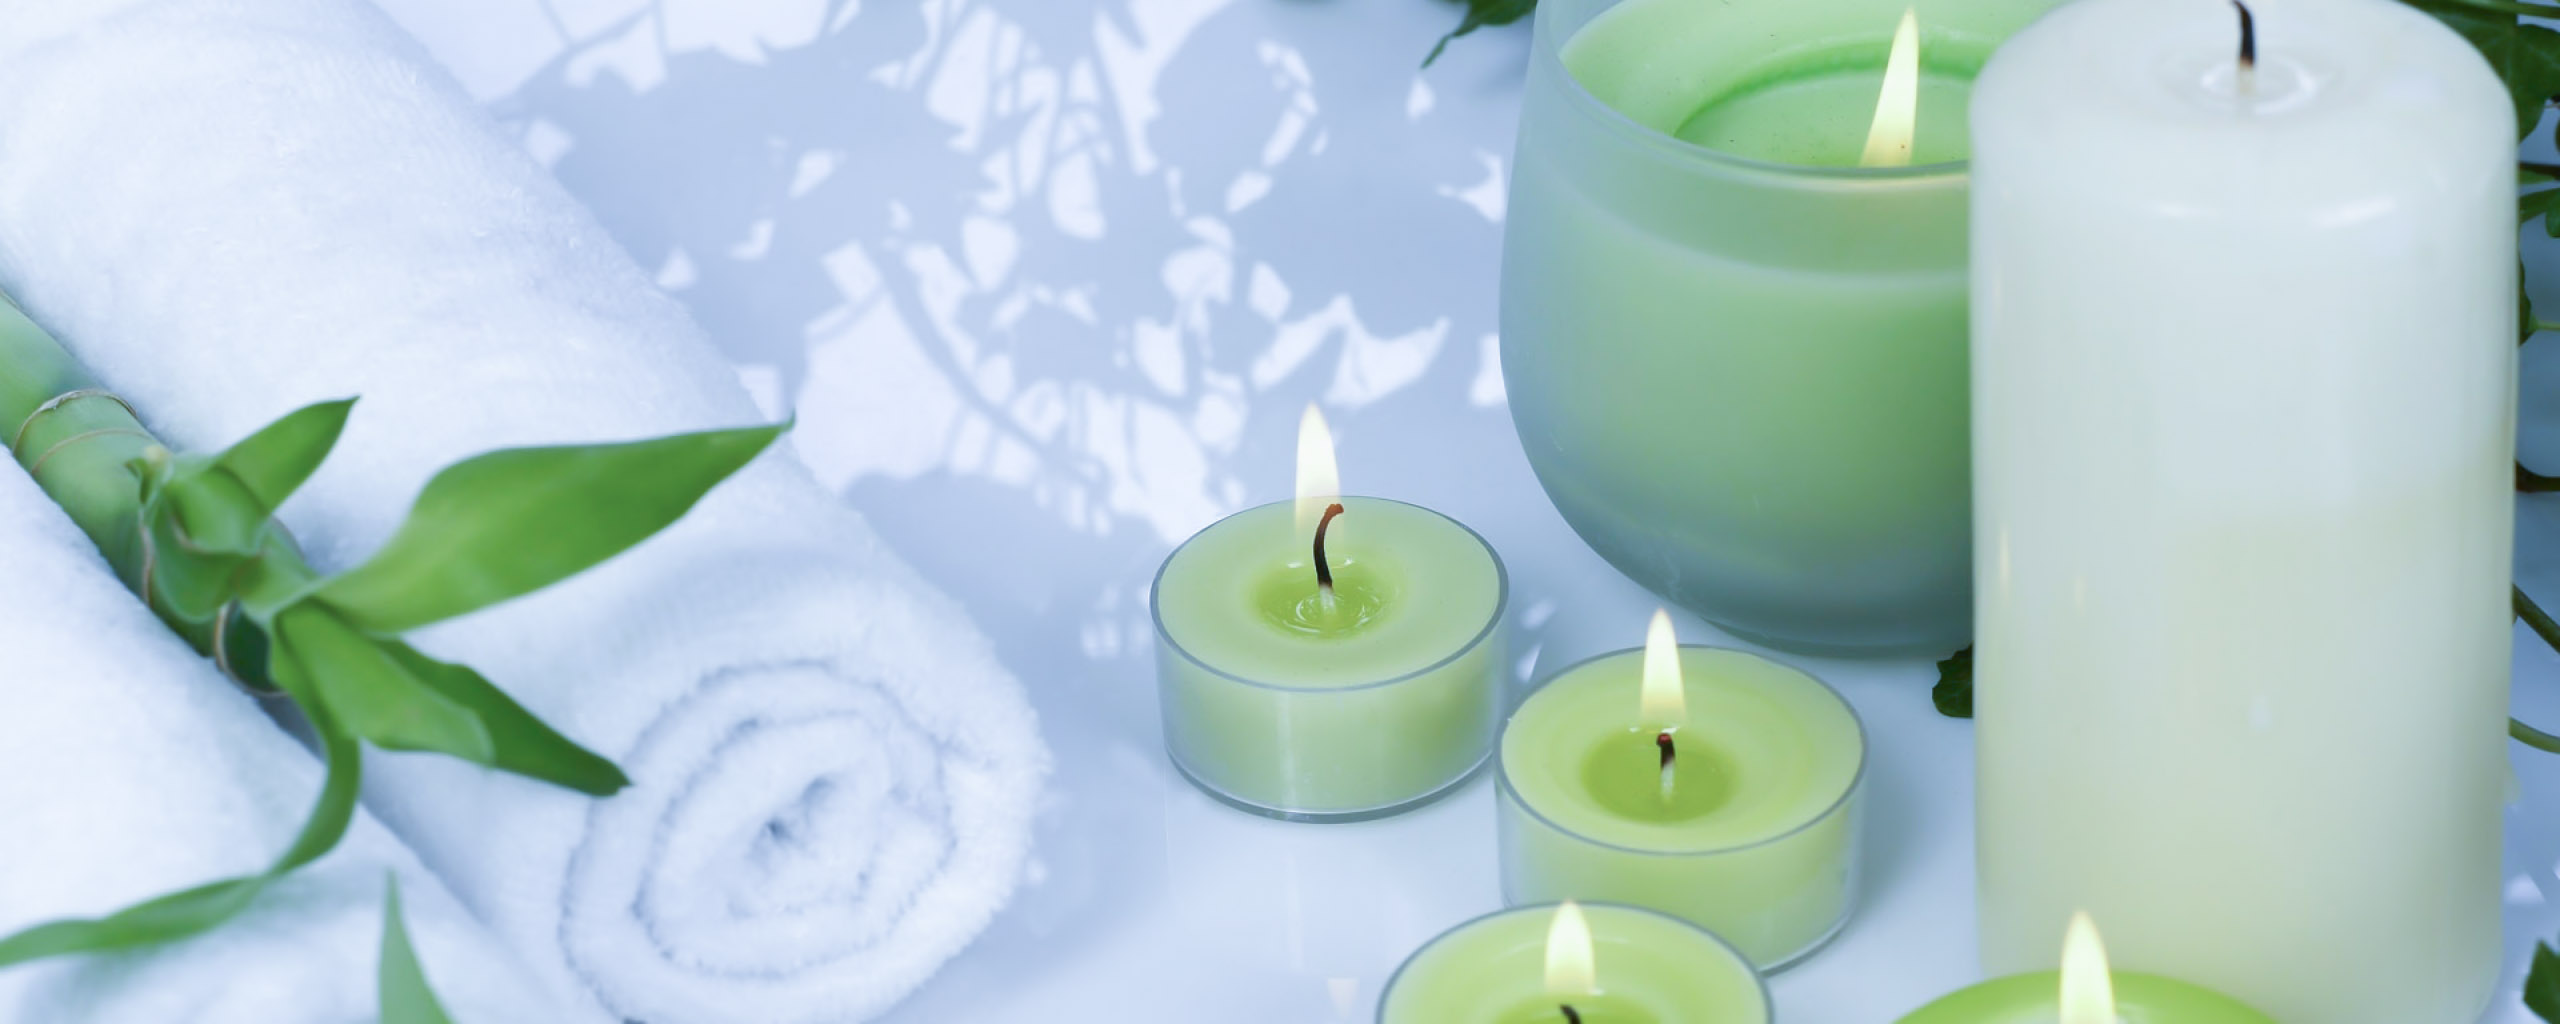 candles_aromatherapy_leaves_massage_64423_2560x1024